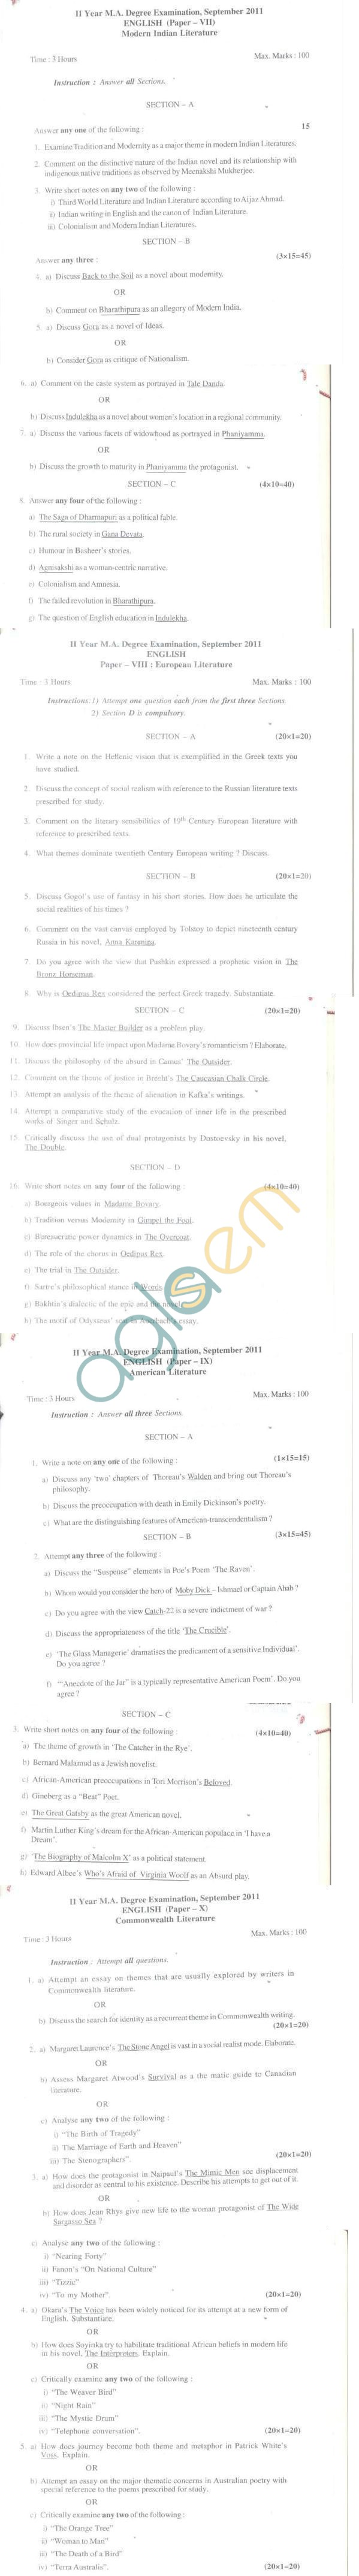 Bangalore University Question Paper September 2011 II Year M.A. Degree Examination - English (Paper-VIII)